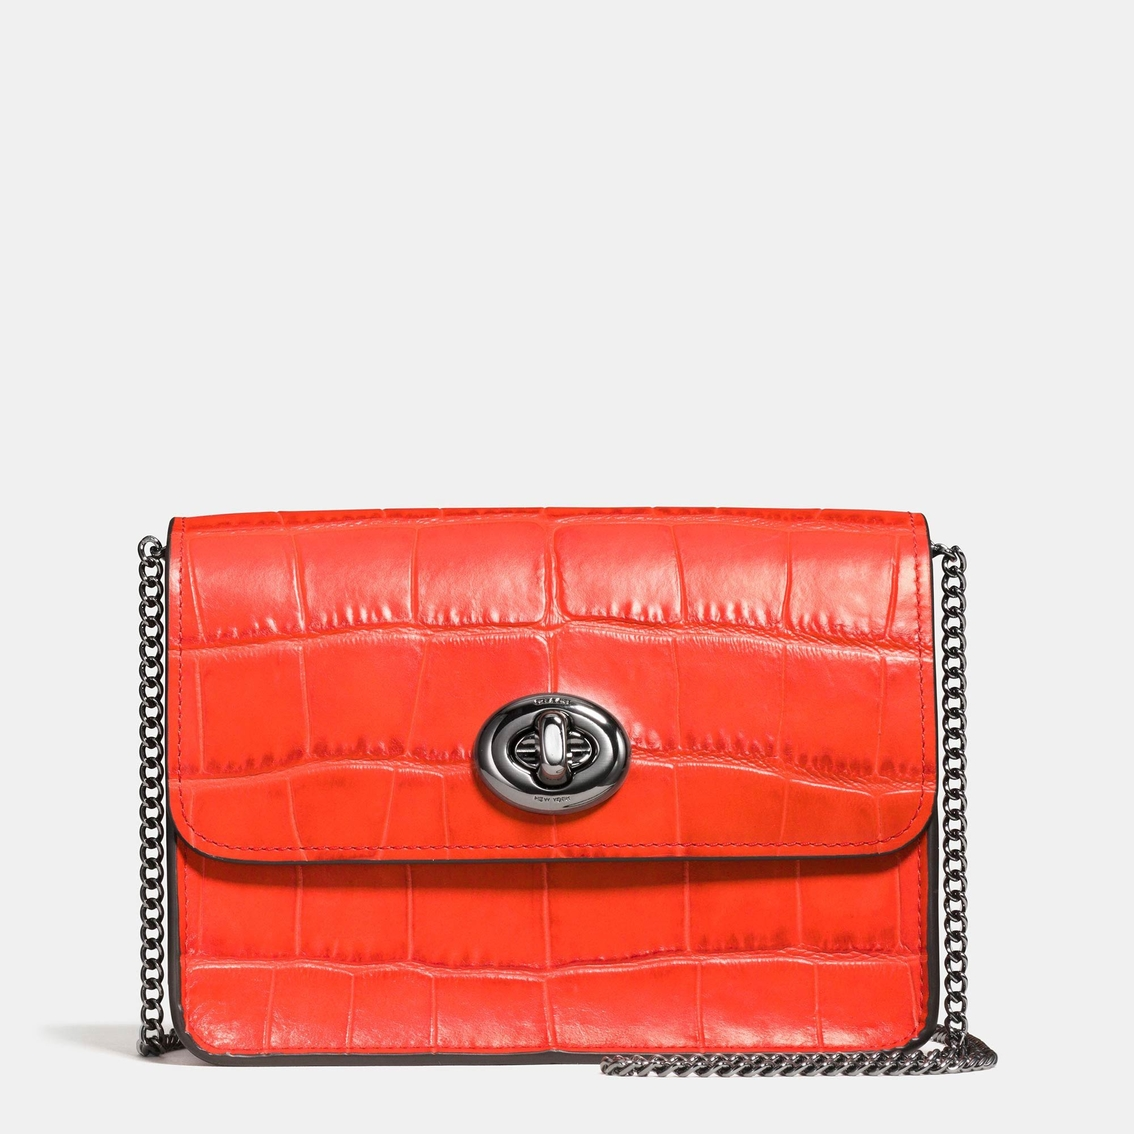 5d7d060acca5 Coach Bowery Crossbody In Croc Embossed Leather | Crossbody Bags ...